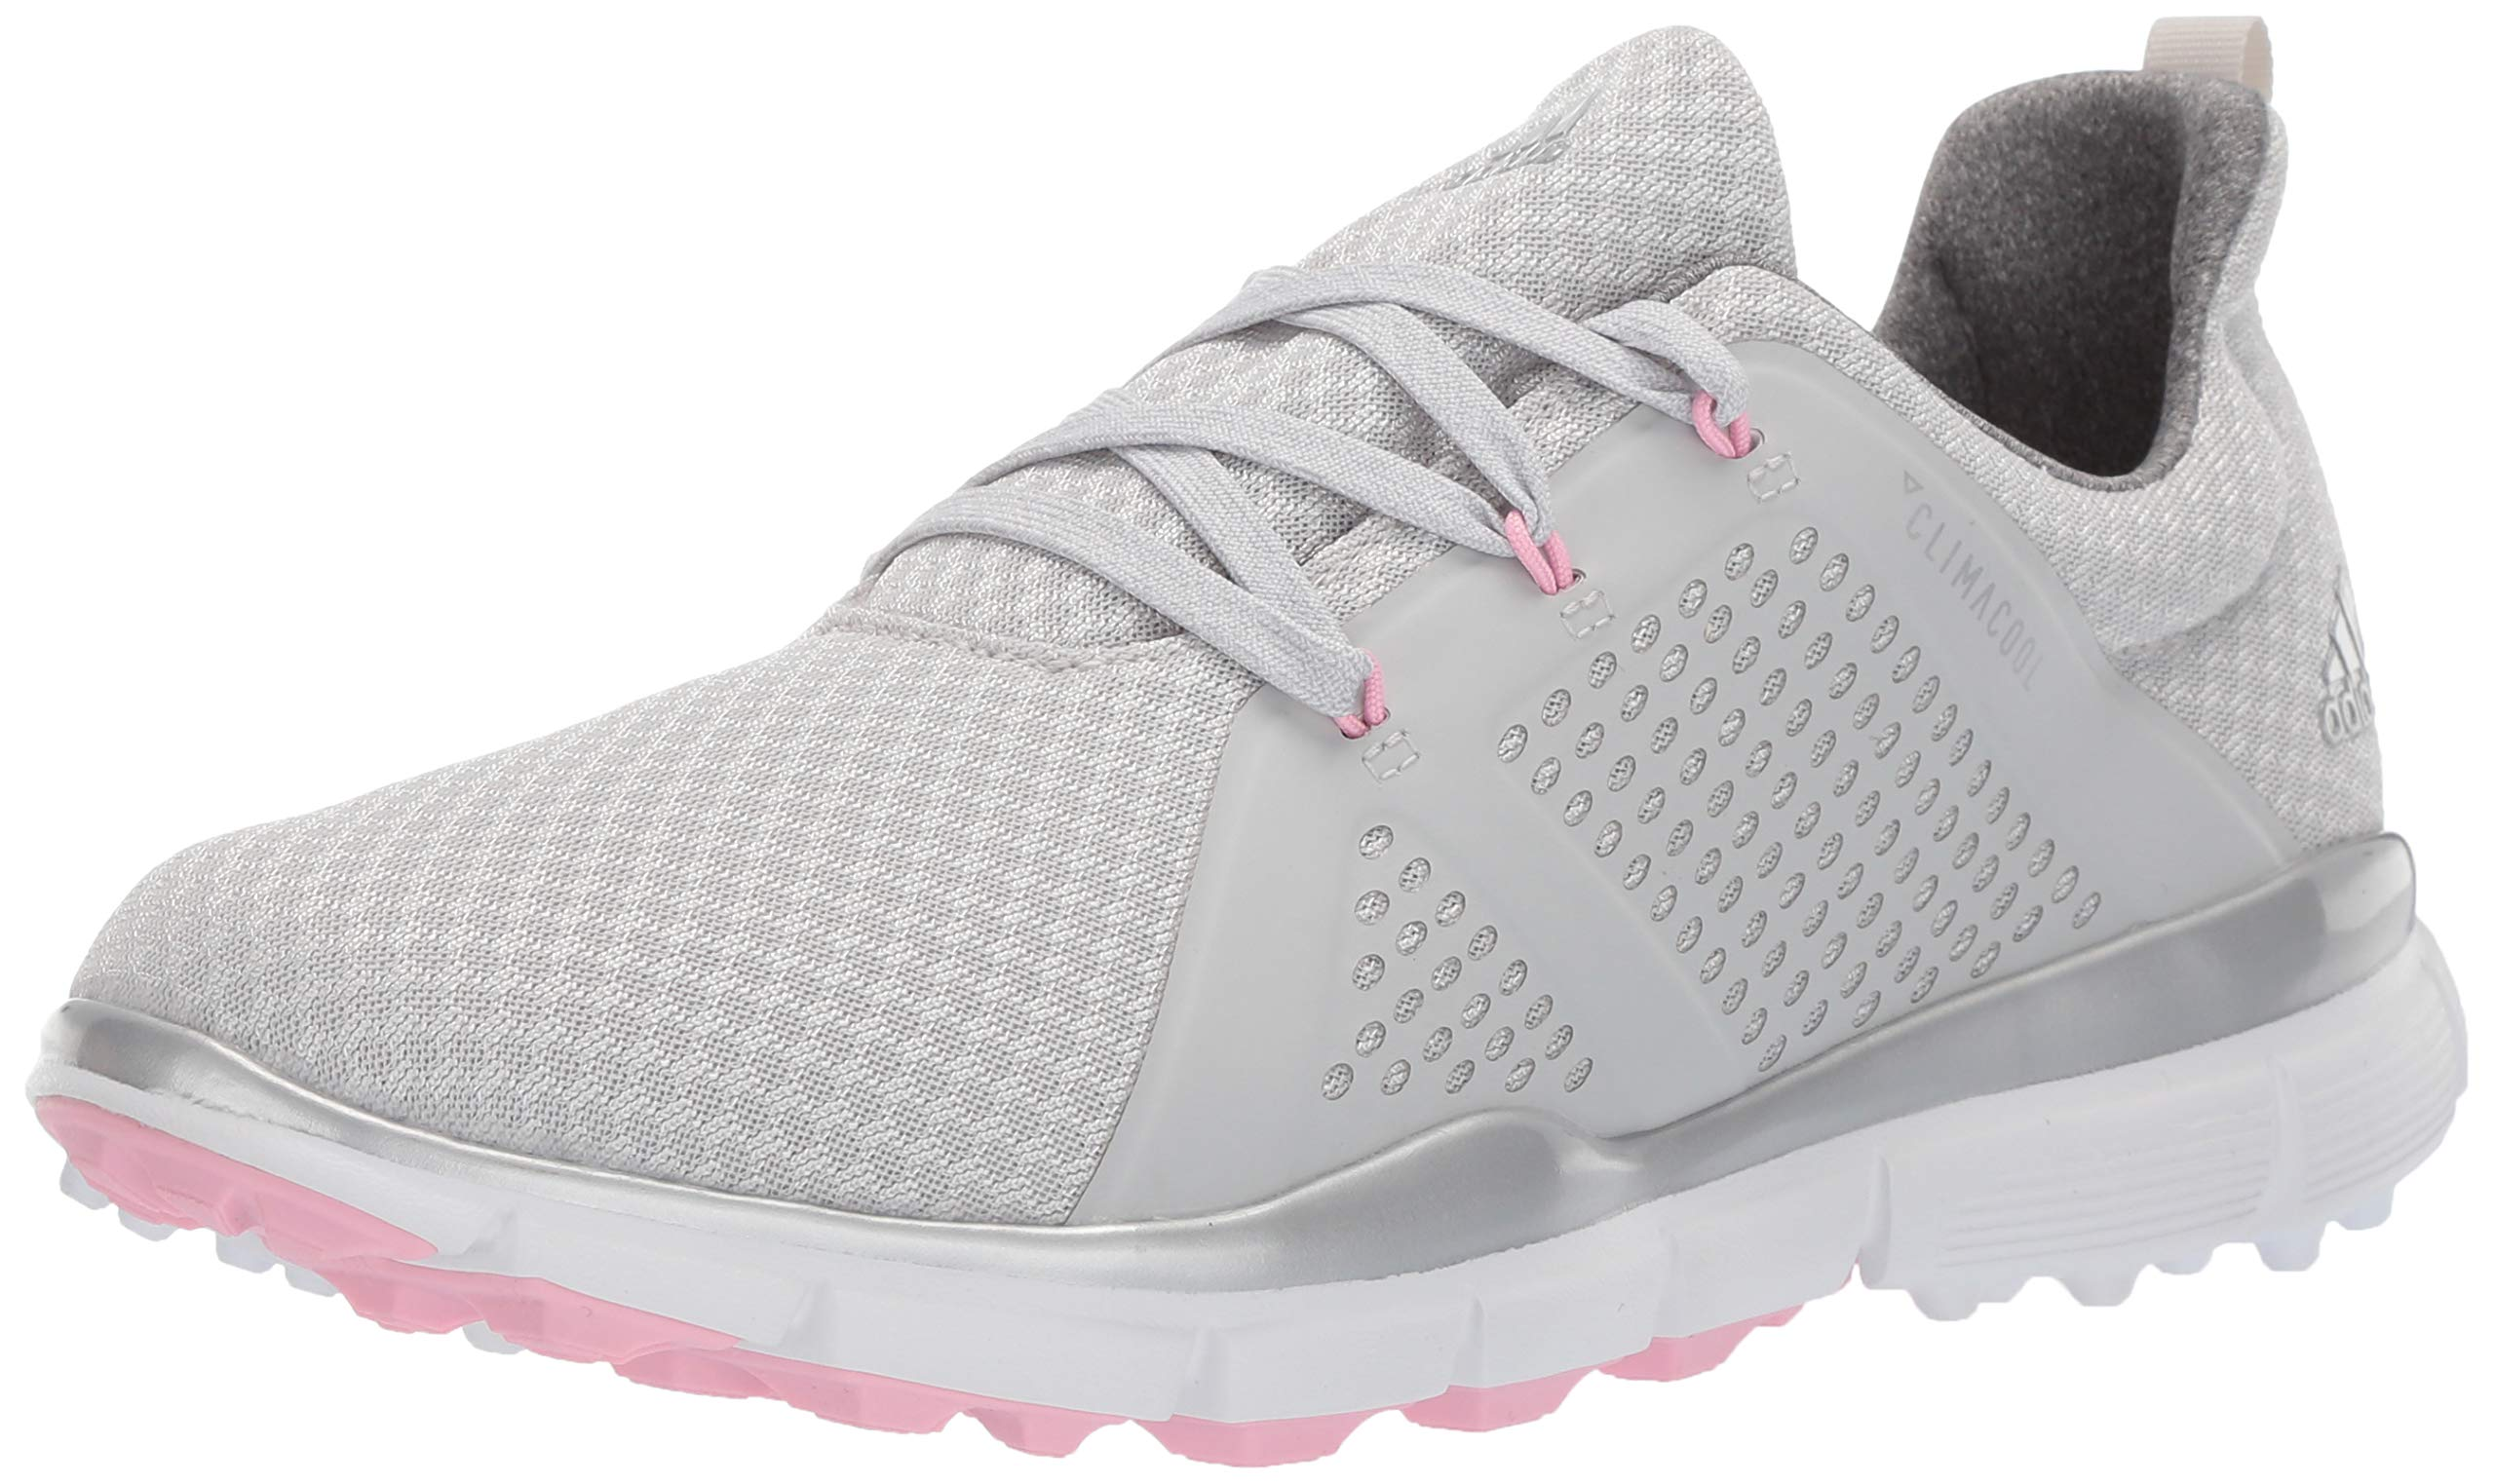 adidas Womens Climacool CAGE Golf Shoe, Grey one/Silver Metallic/True Pink, 8.5 M US by adidas